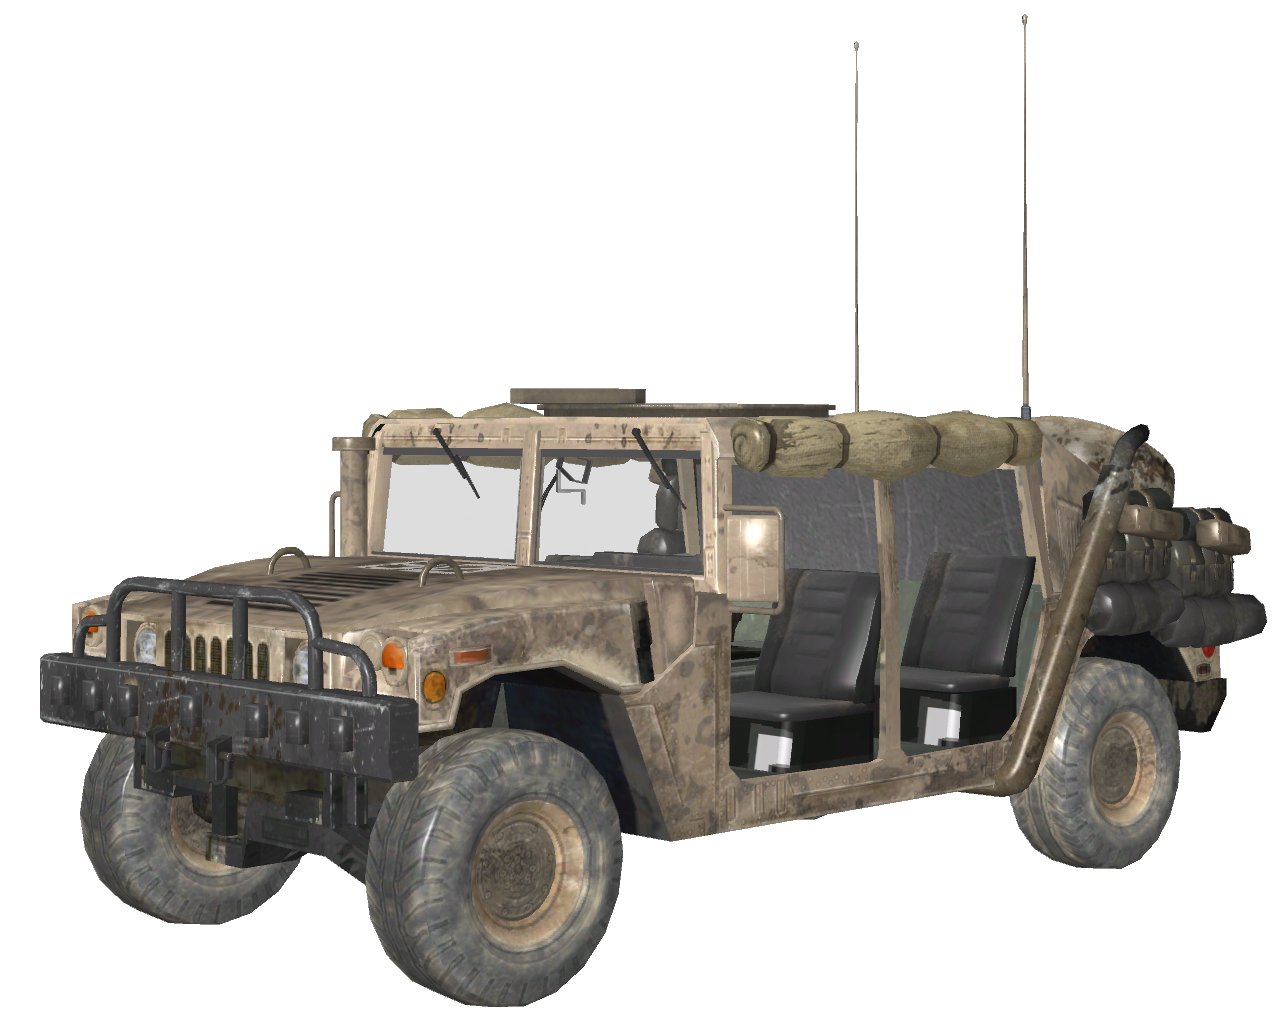 M1026 HMMWV No Doors model MW3.png  sc 1 st  Call of Duty Wiki - Fandom & Image - M1026 HMMWV No Doors model MW3.png | Call of Duty Wiki ...